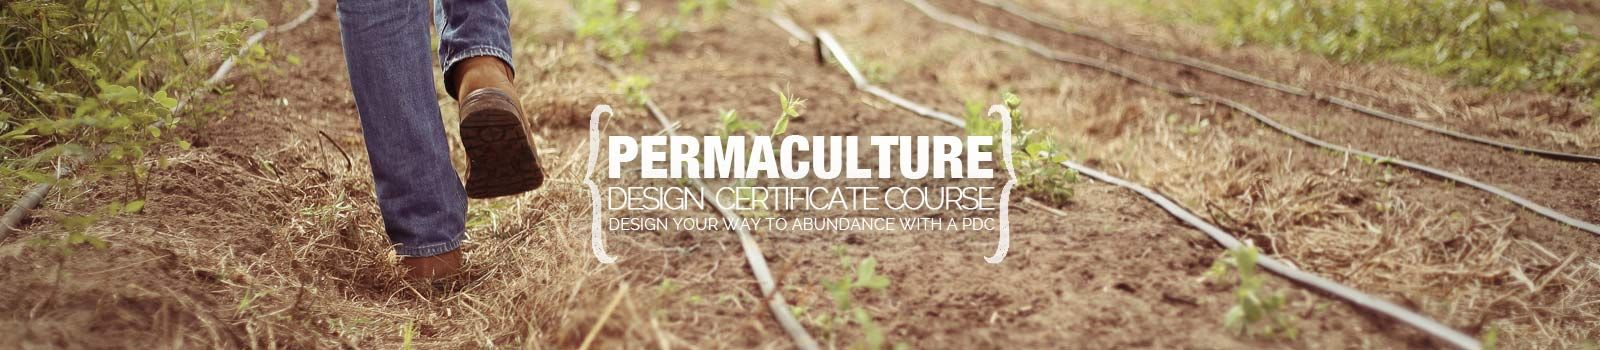 Tropical Orchard Establishment Practices and Concepts Part 2 of 3 The Permaculture Research Institute